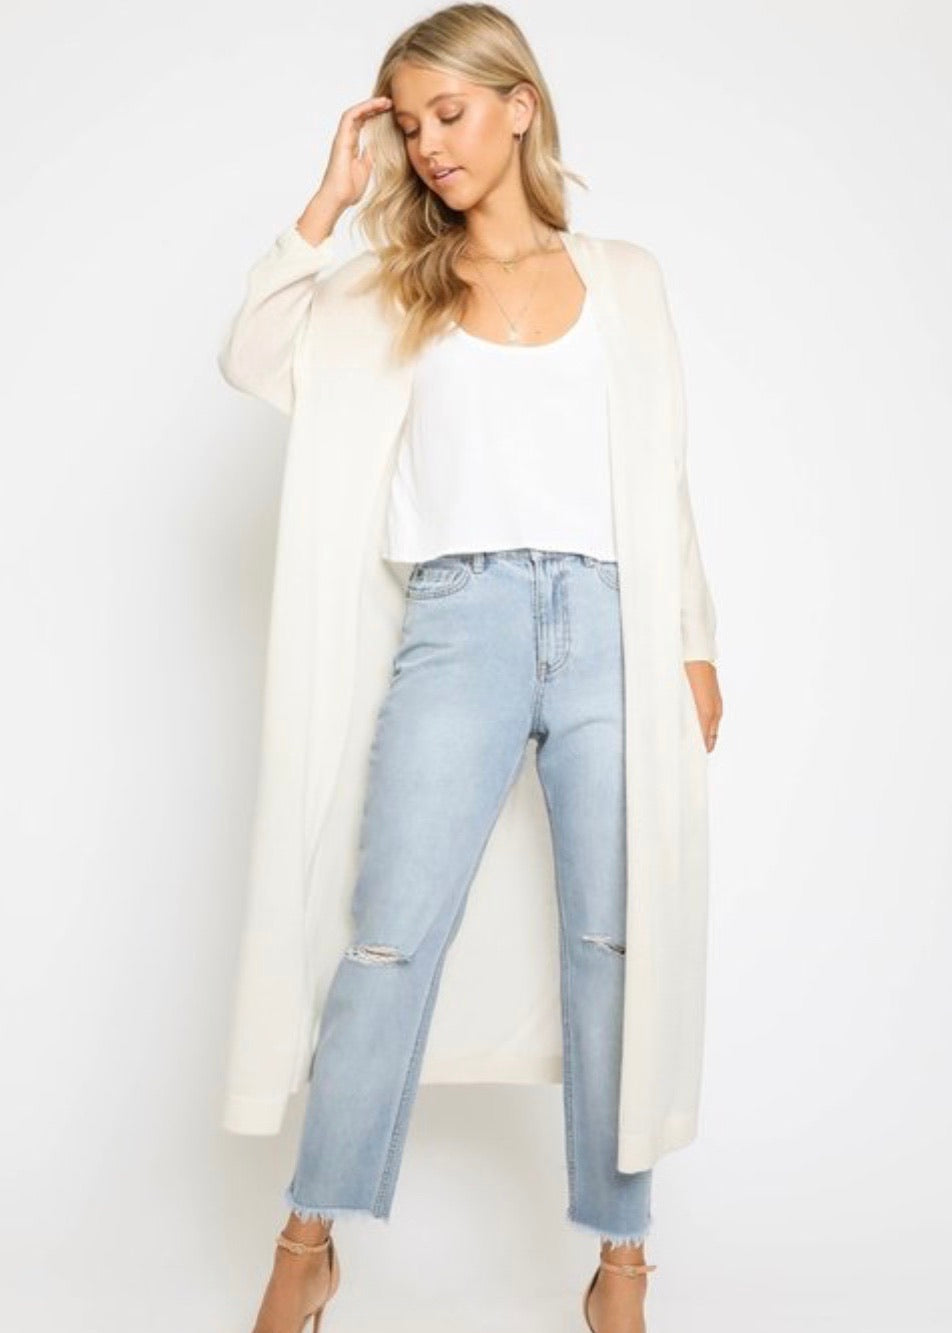 Easy Breezy Cardigan